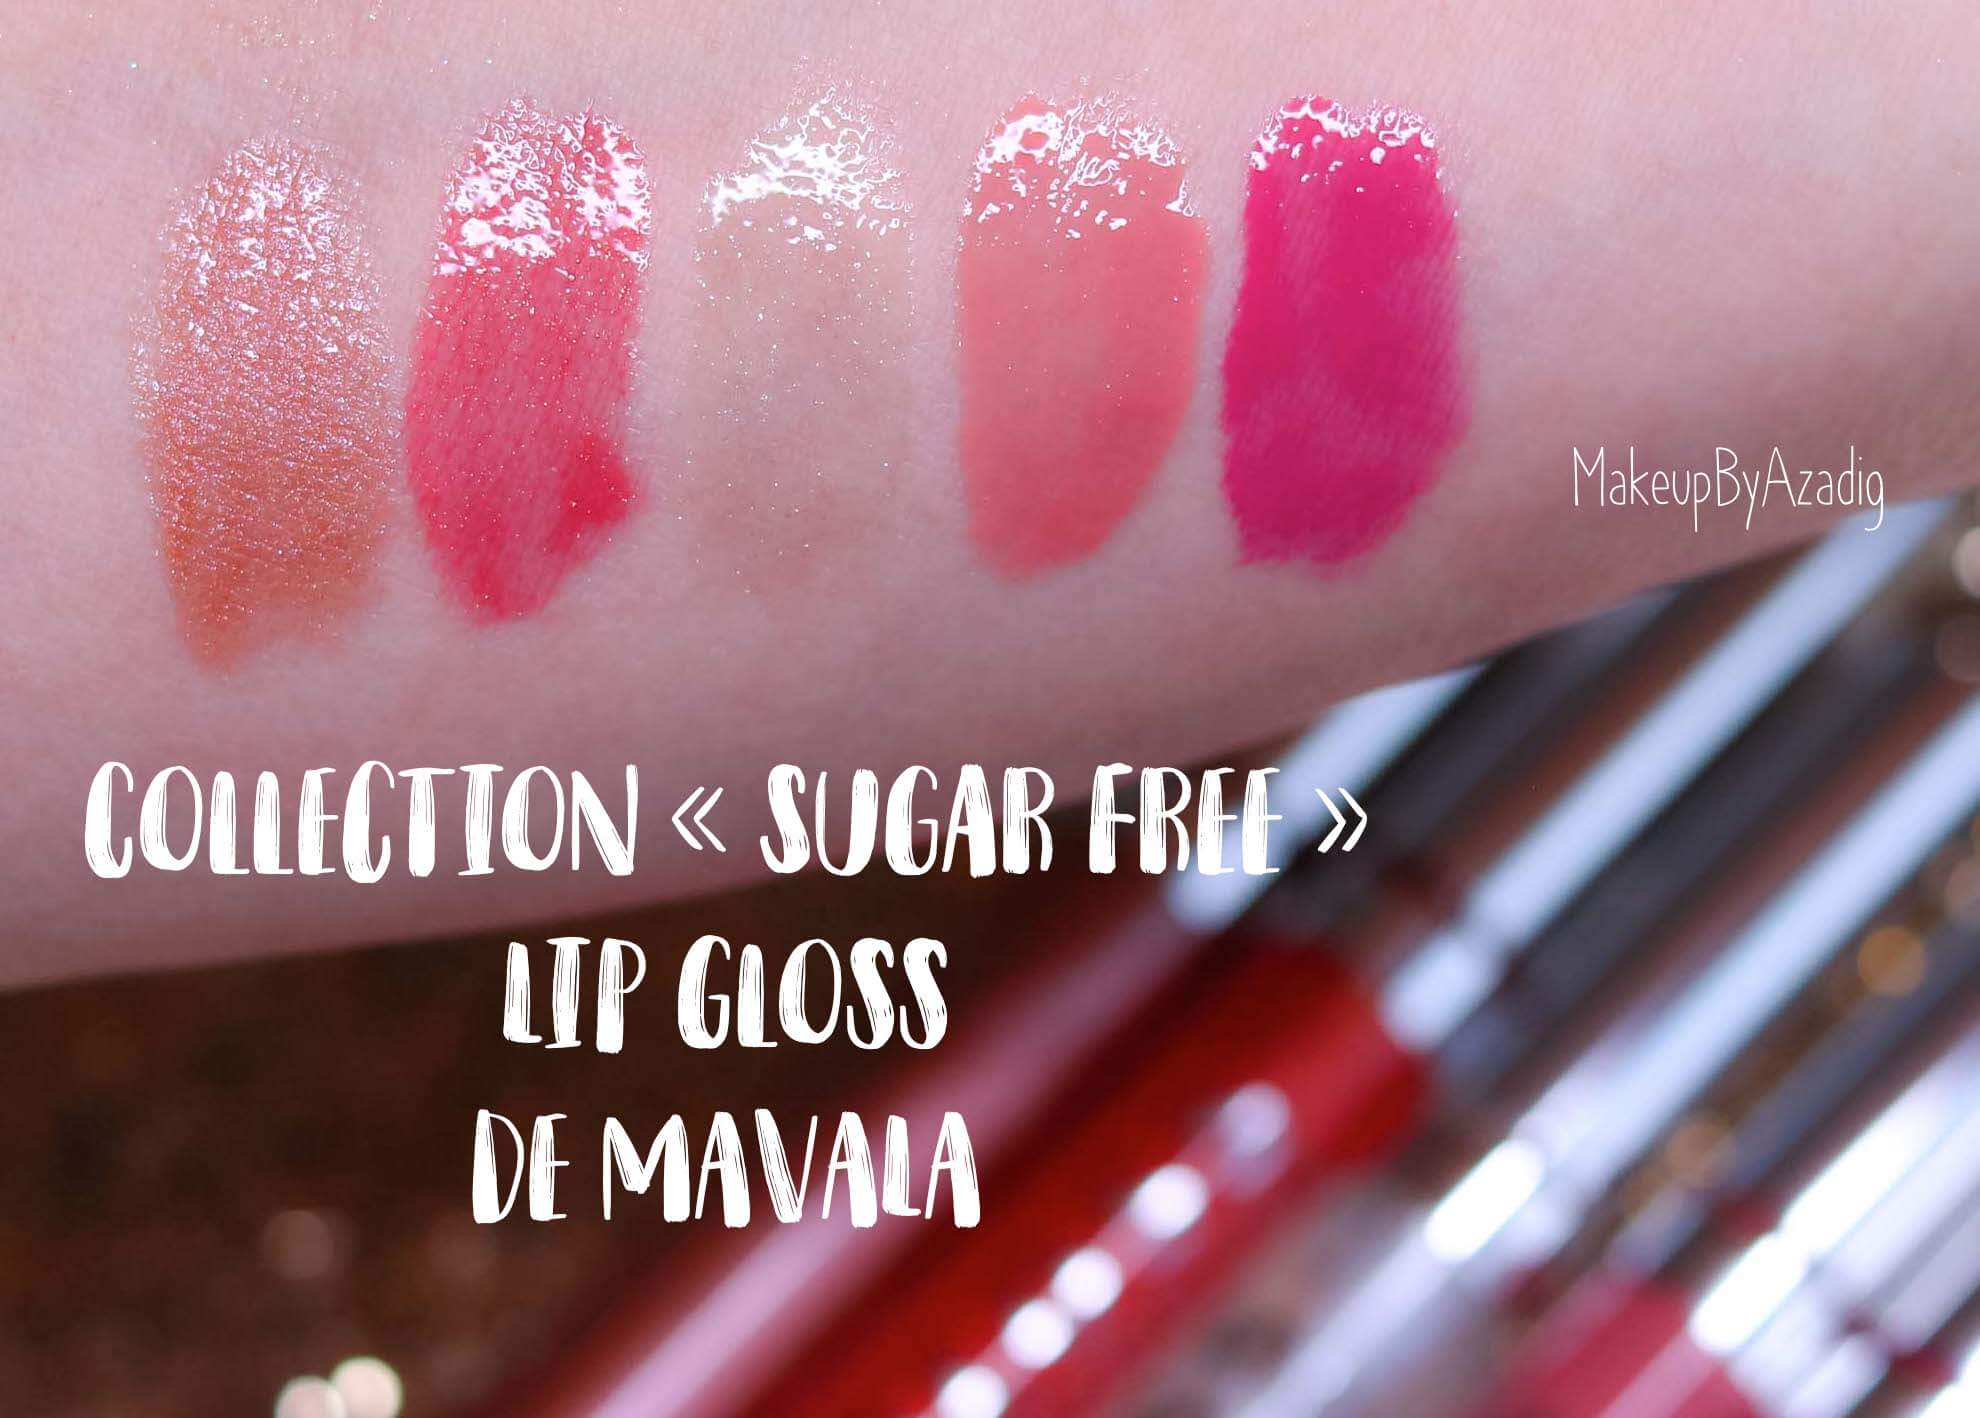 revue-lip-gloss-mavala-sugar-free-collection-meilleur-gloss-levres-lipgloss-rose-rouge-brillant-makeupbyazadig-avis-prix-swatch-swatches